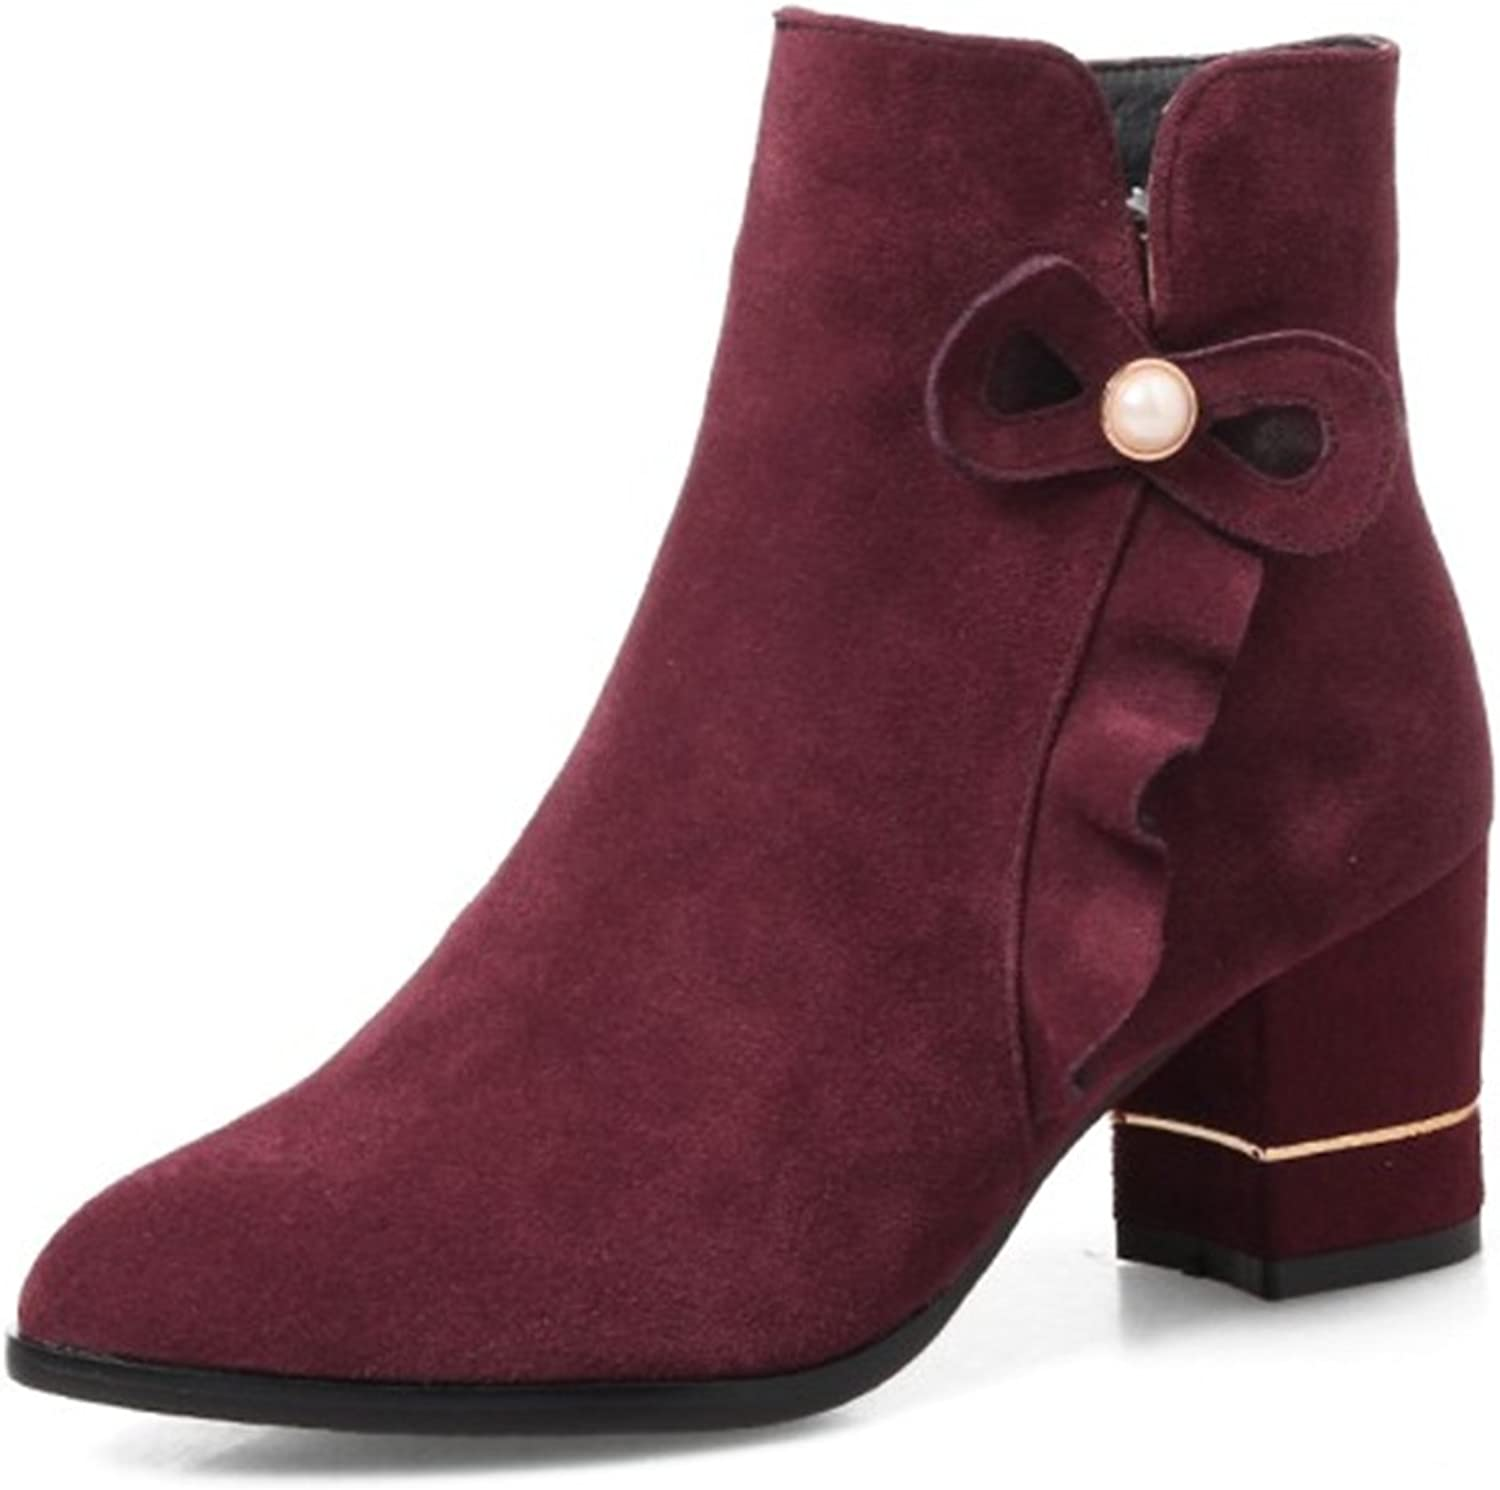 QZUnique Women's Short Boots Ladies' Suede Mid Heels Frosted Suede Pointed Toe shoes